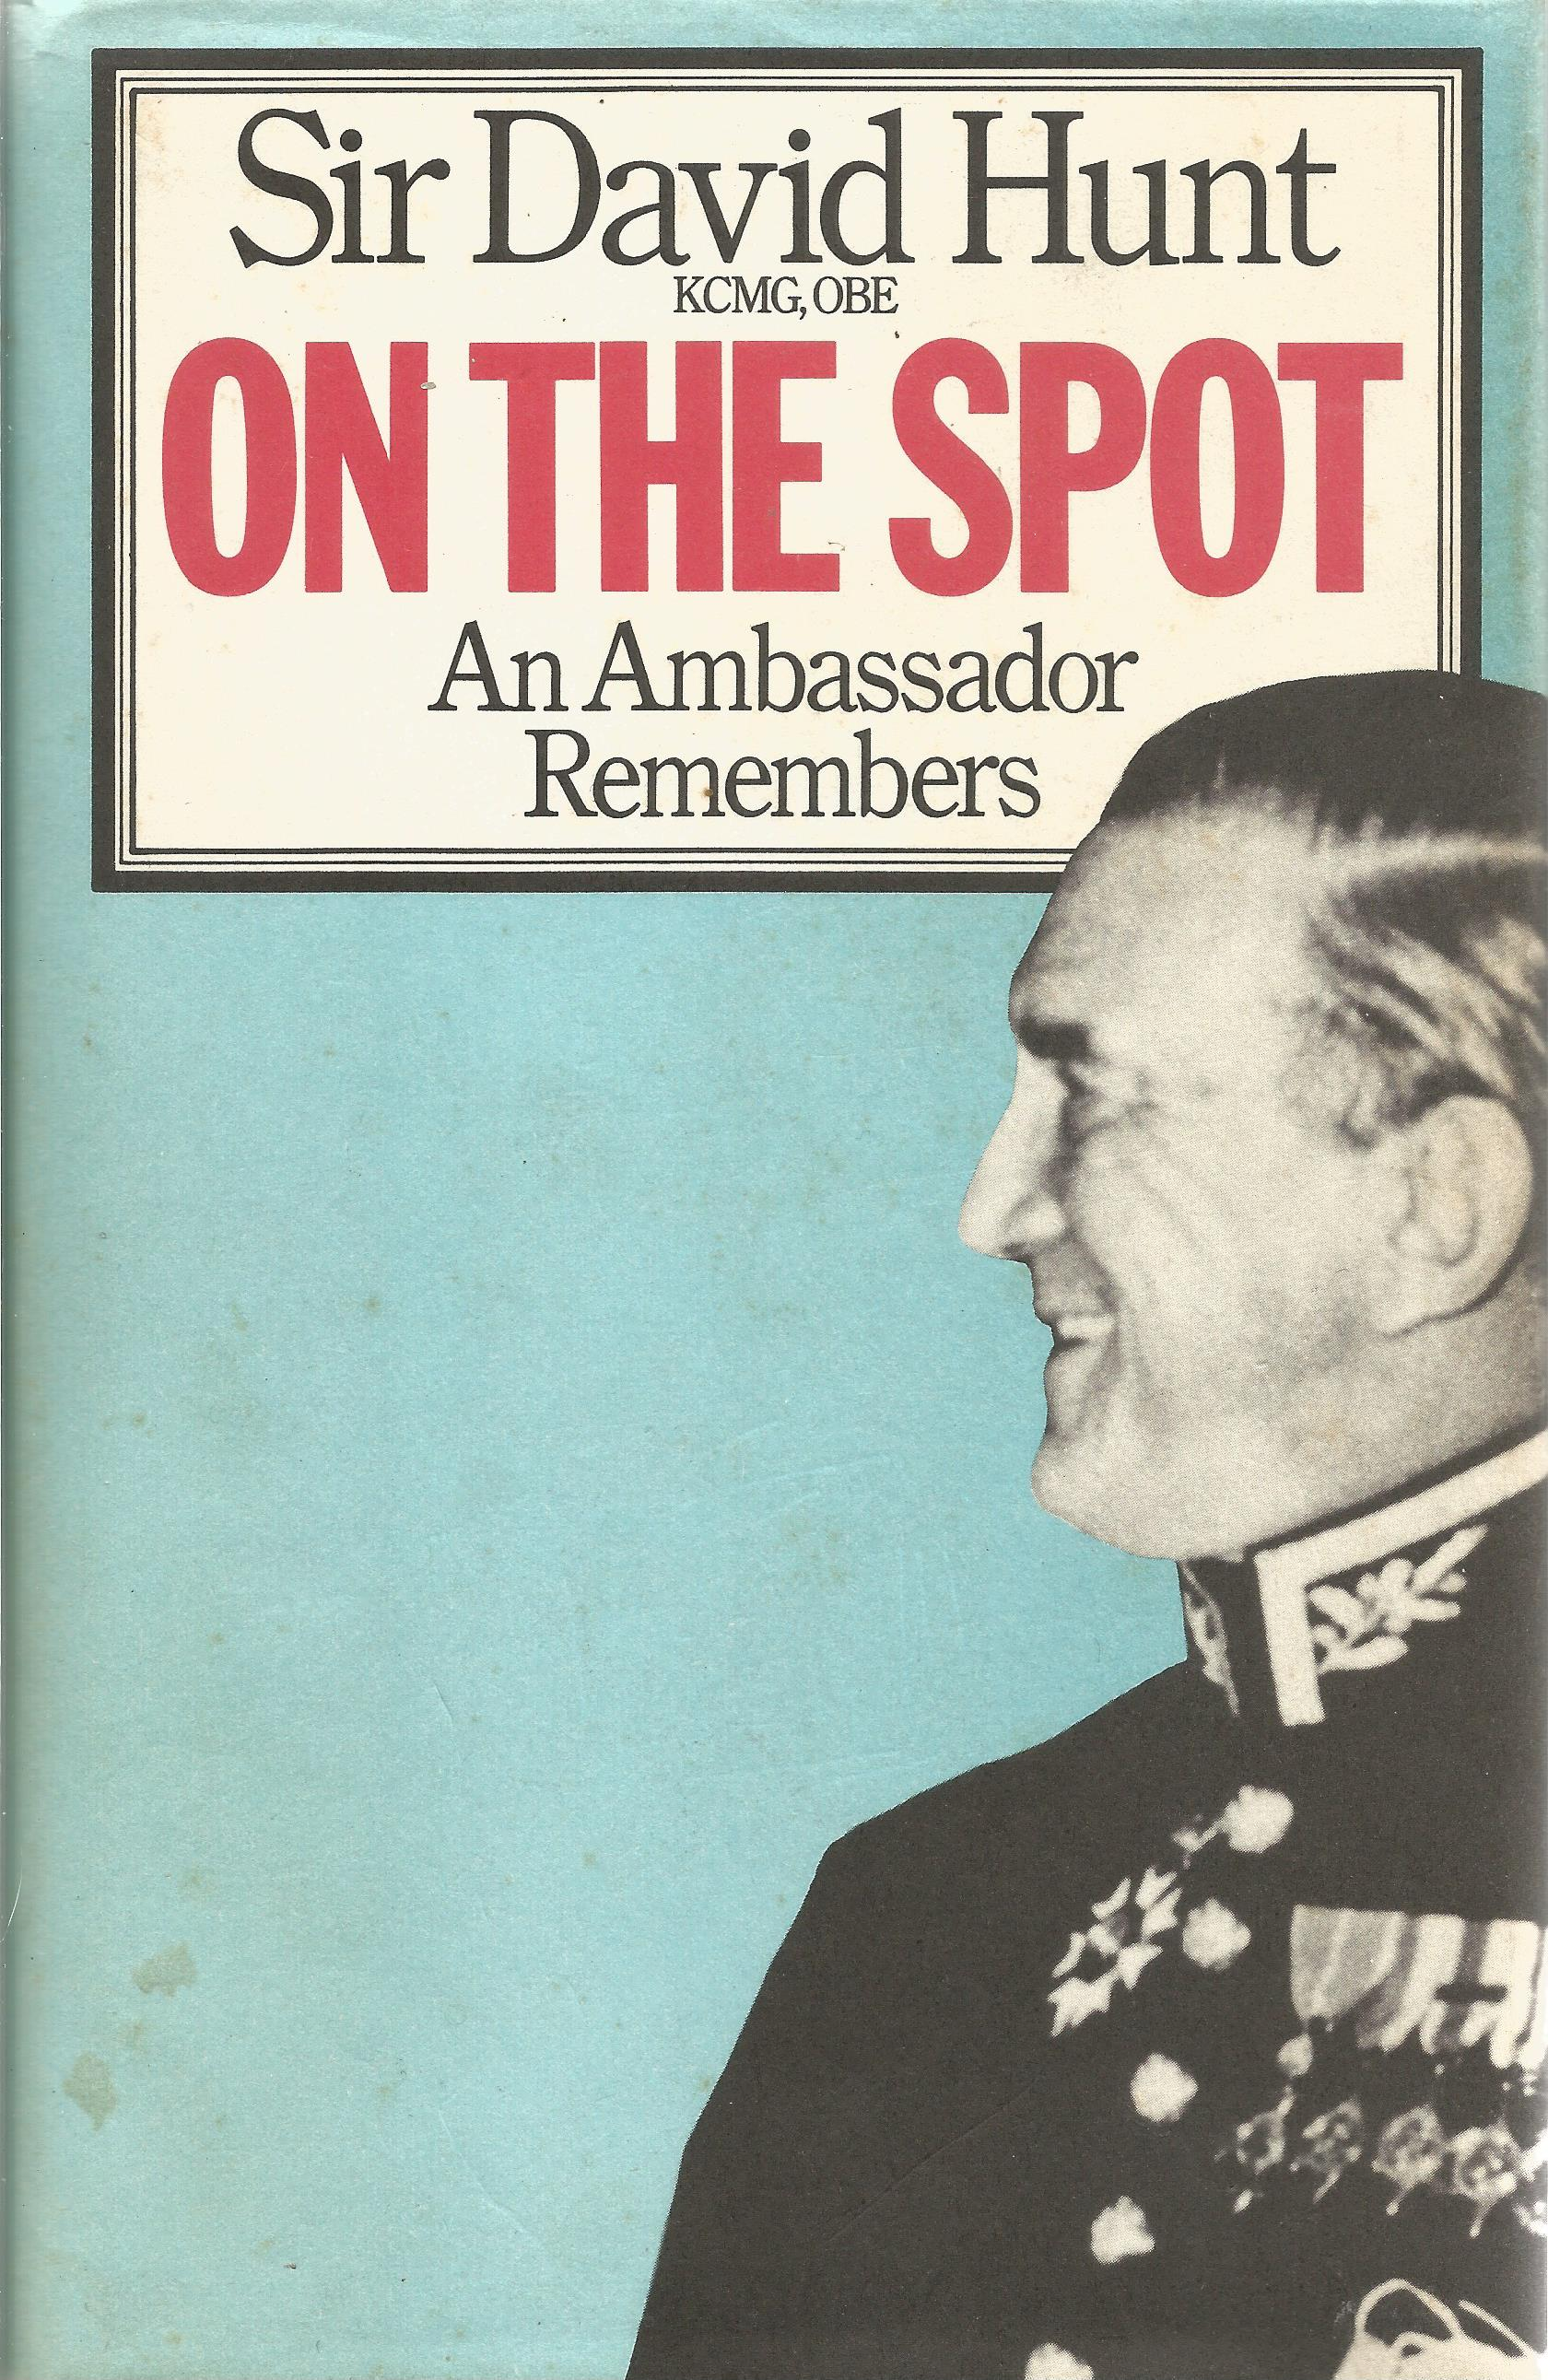 Sir David Hunt Hardback Book On the Spot signed by the Author on the First Page and dated 30th